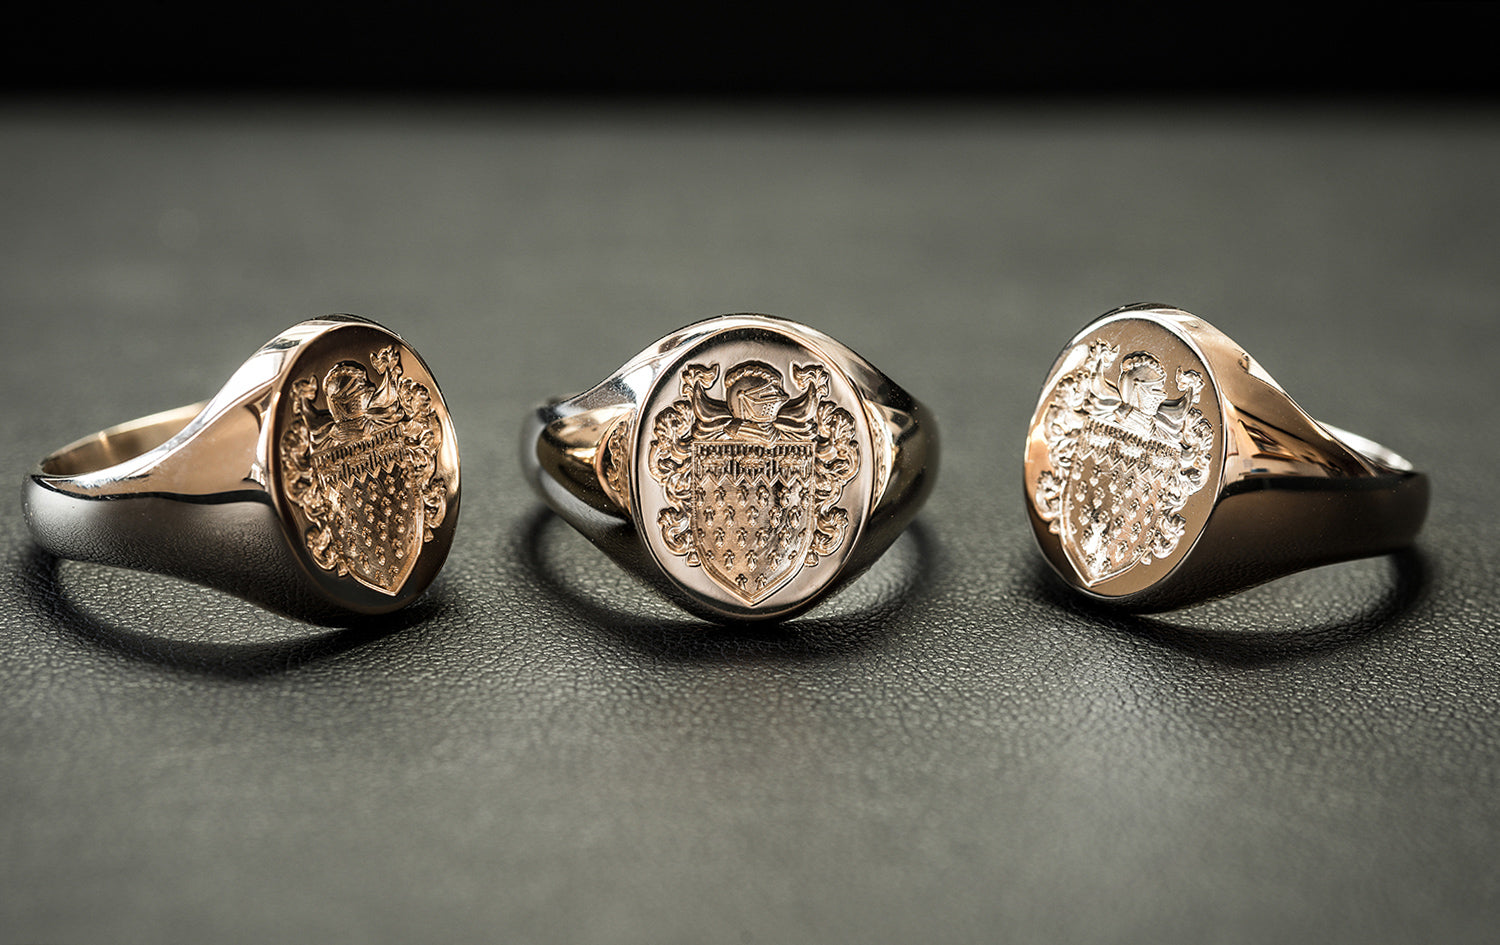 3 bespoke signet rings with deep seal engraving of a family crest